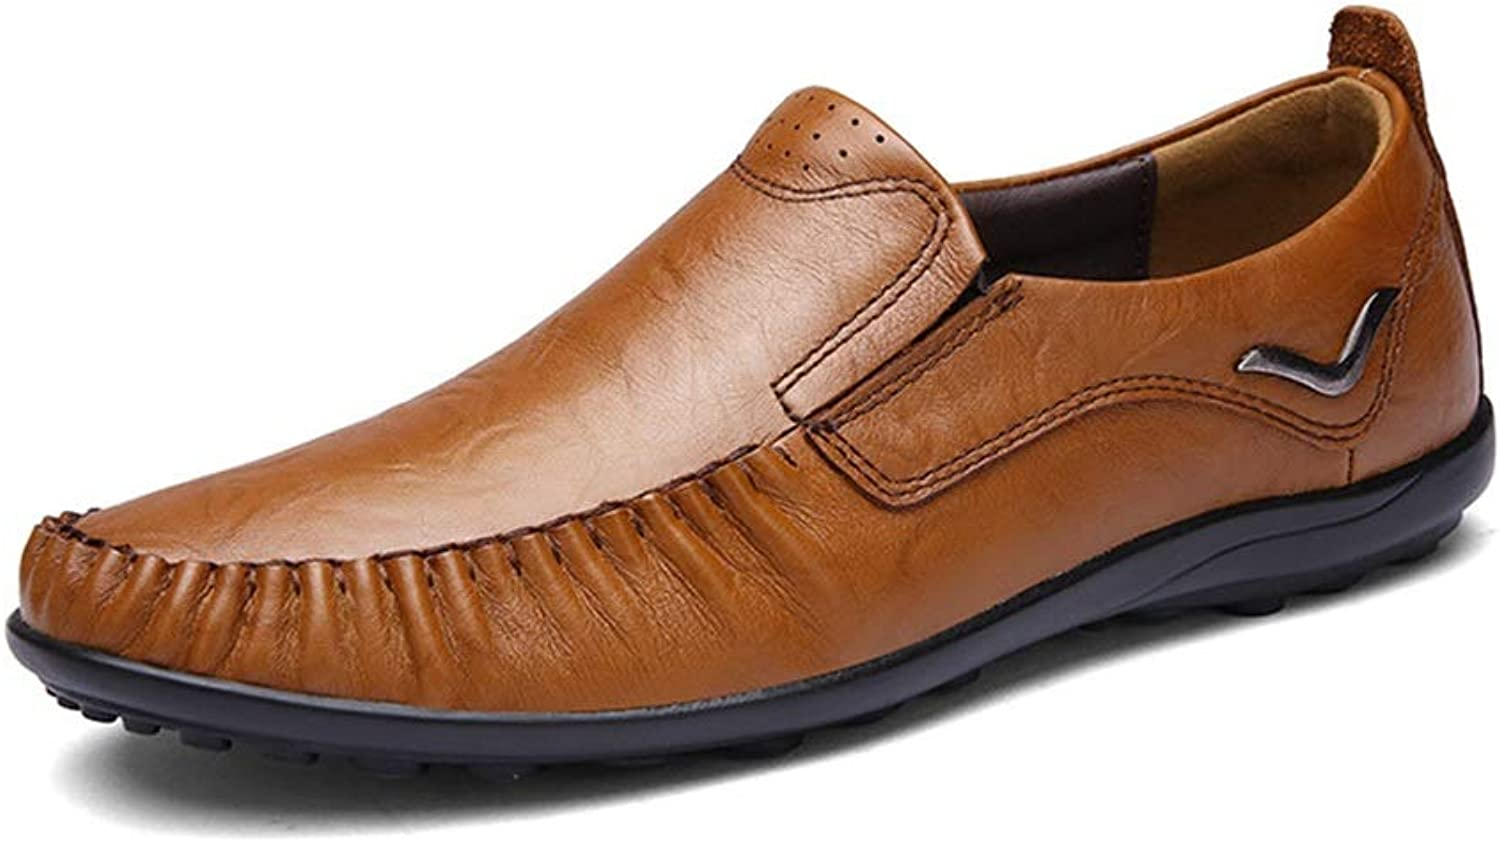 Casual shoes Leather Men's Peas shoes Lazy shoes Lightweight Driving shoes (color   Dark Brown, Size   45)